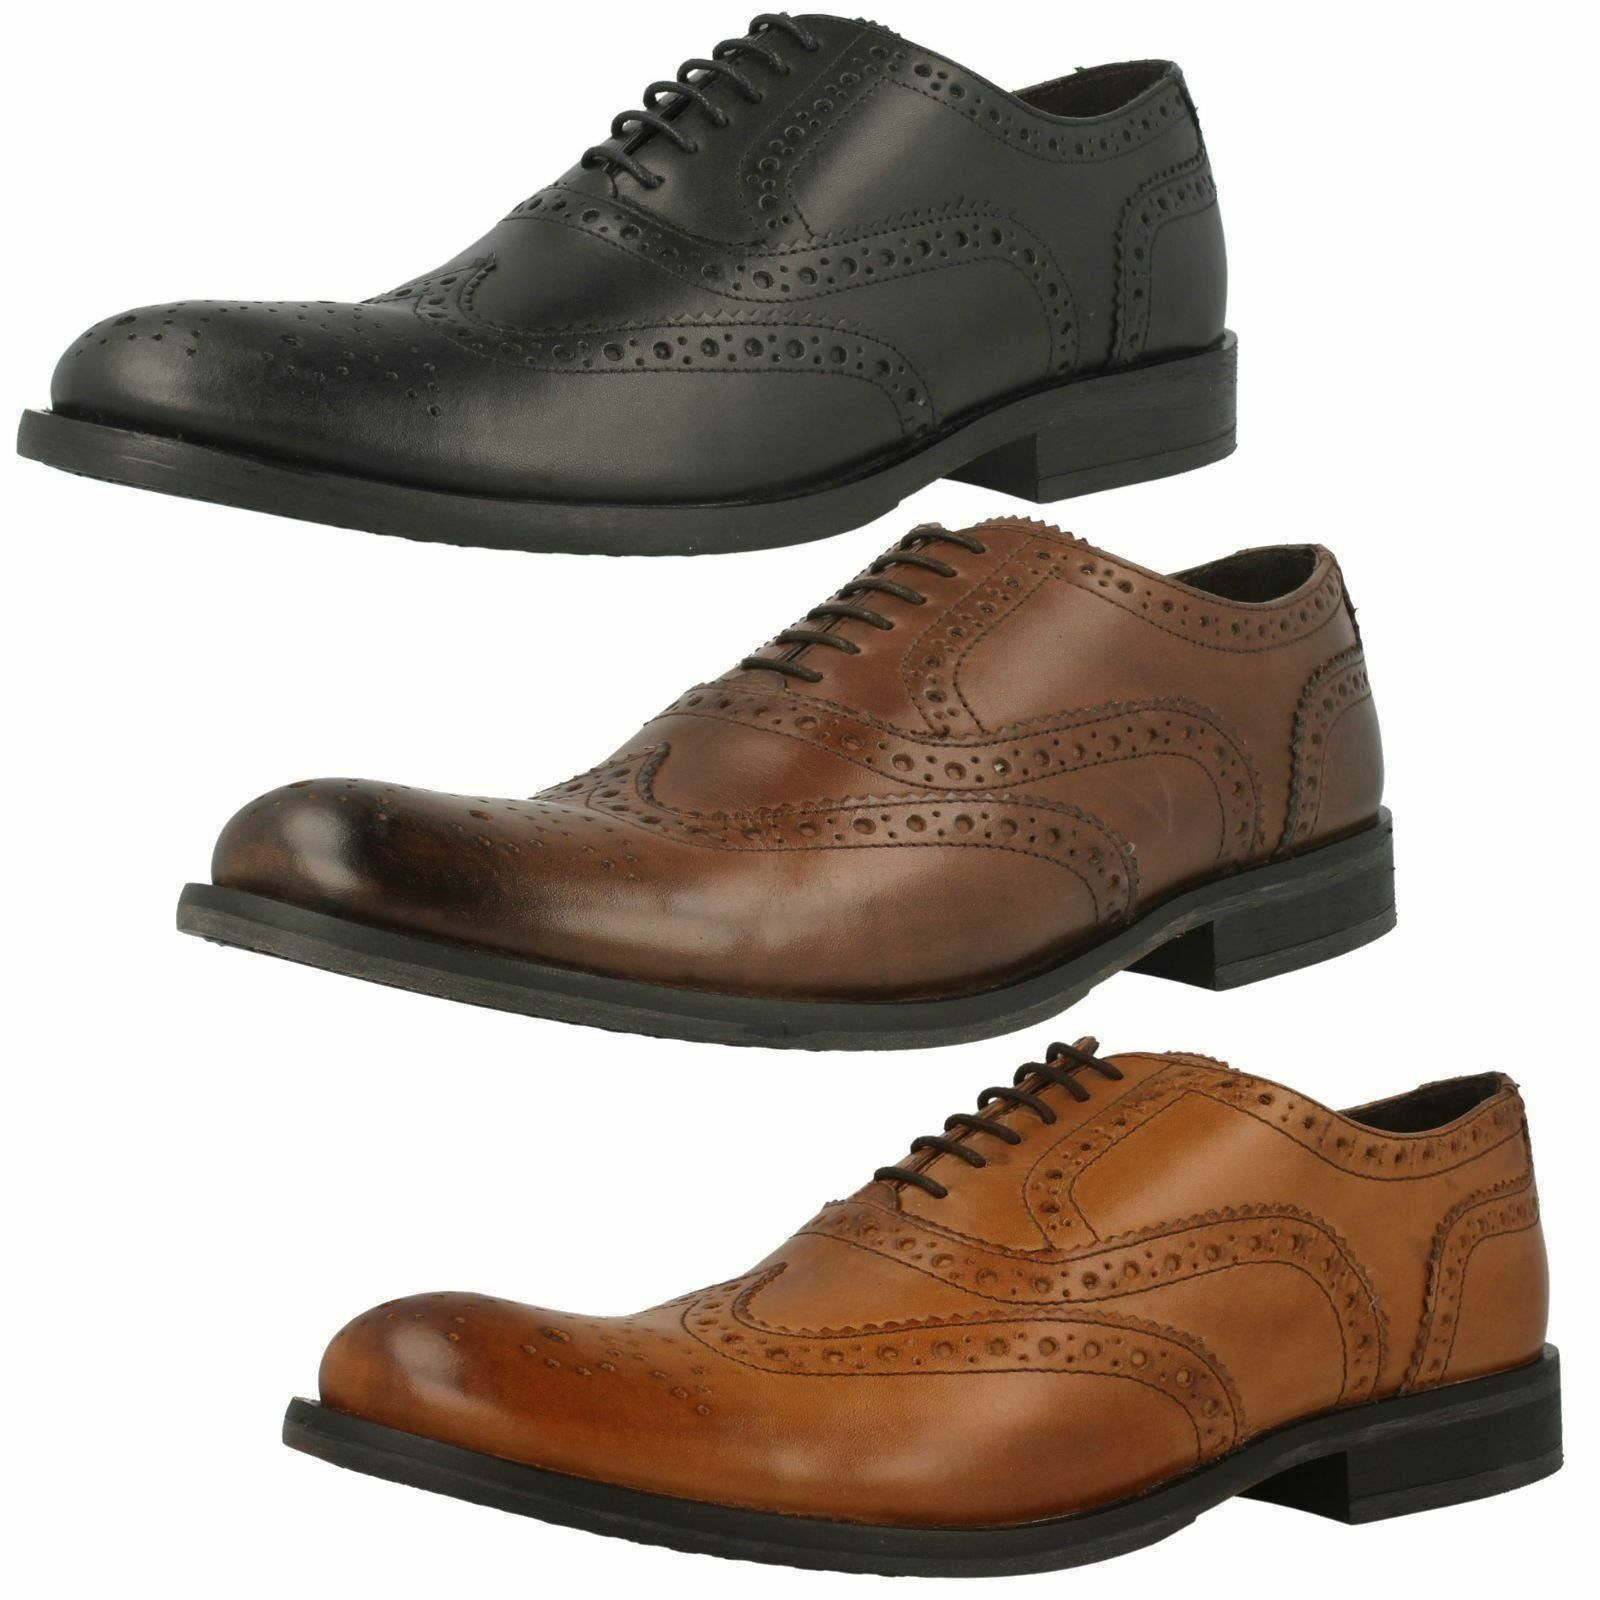 Herren BASE WAXY SHOE LEATHER BROGUE LACE UP SHOE WAXY IN BROWN & BLACK STYLE - WALNUT d5a95c